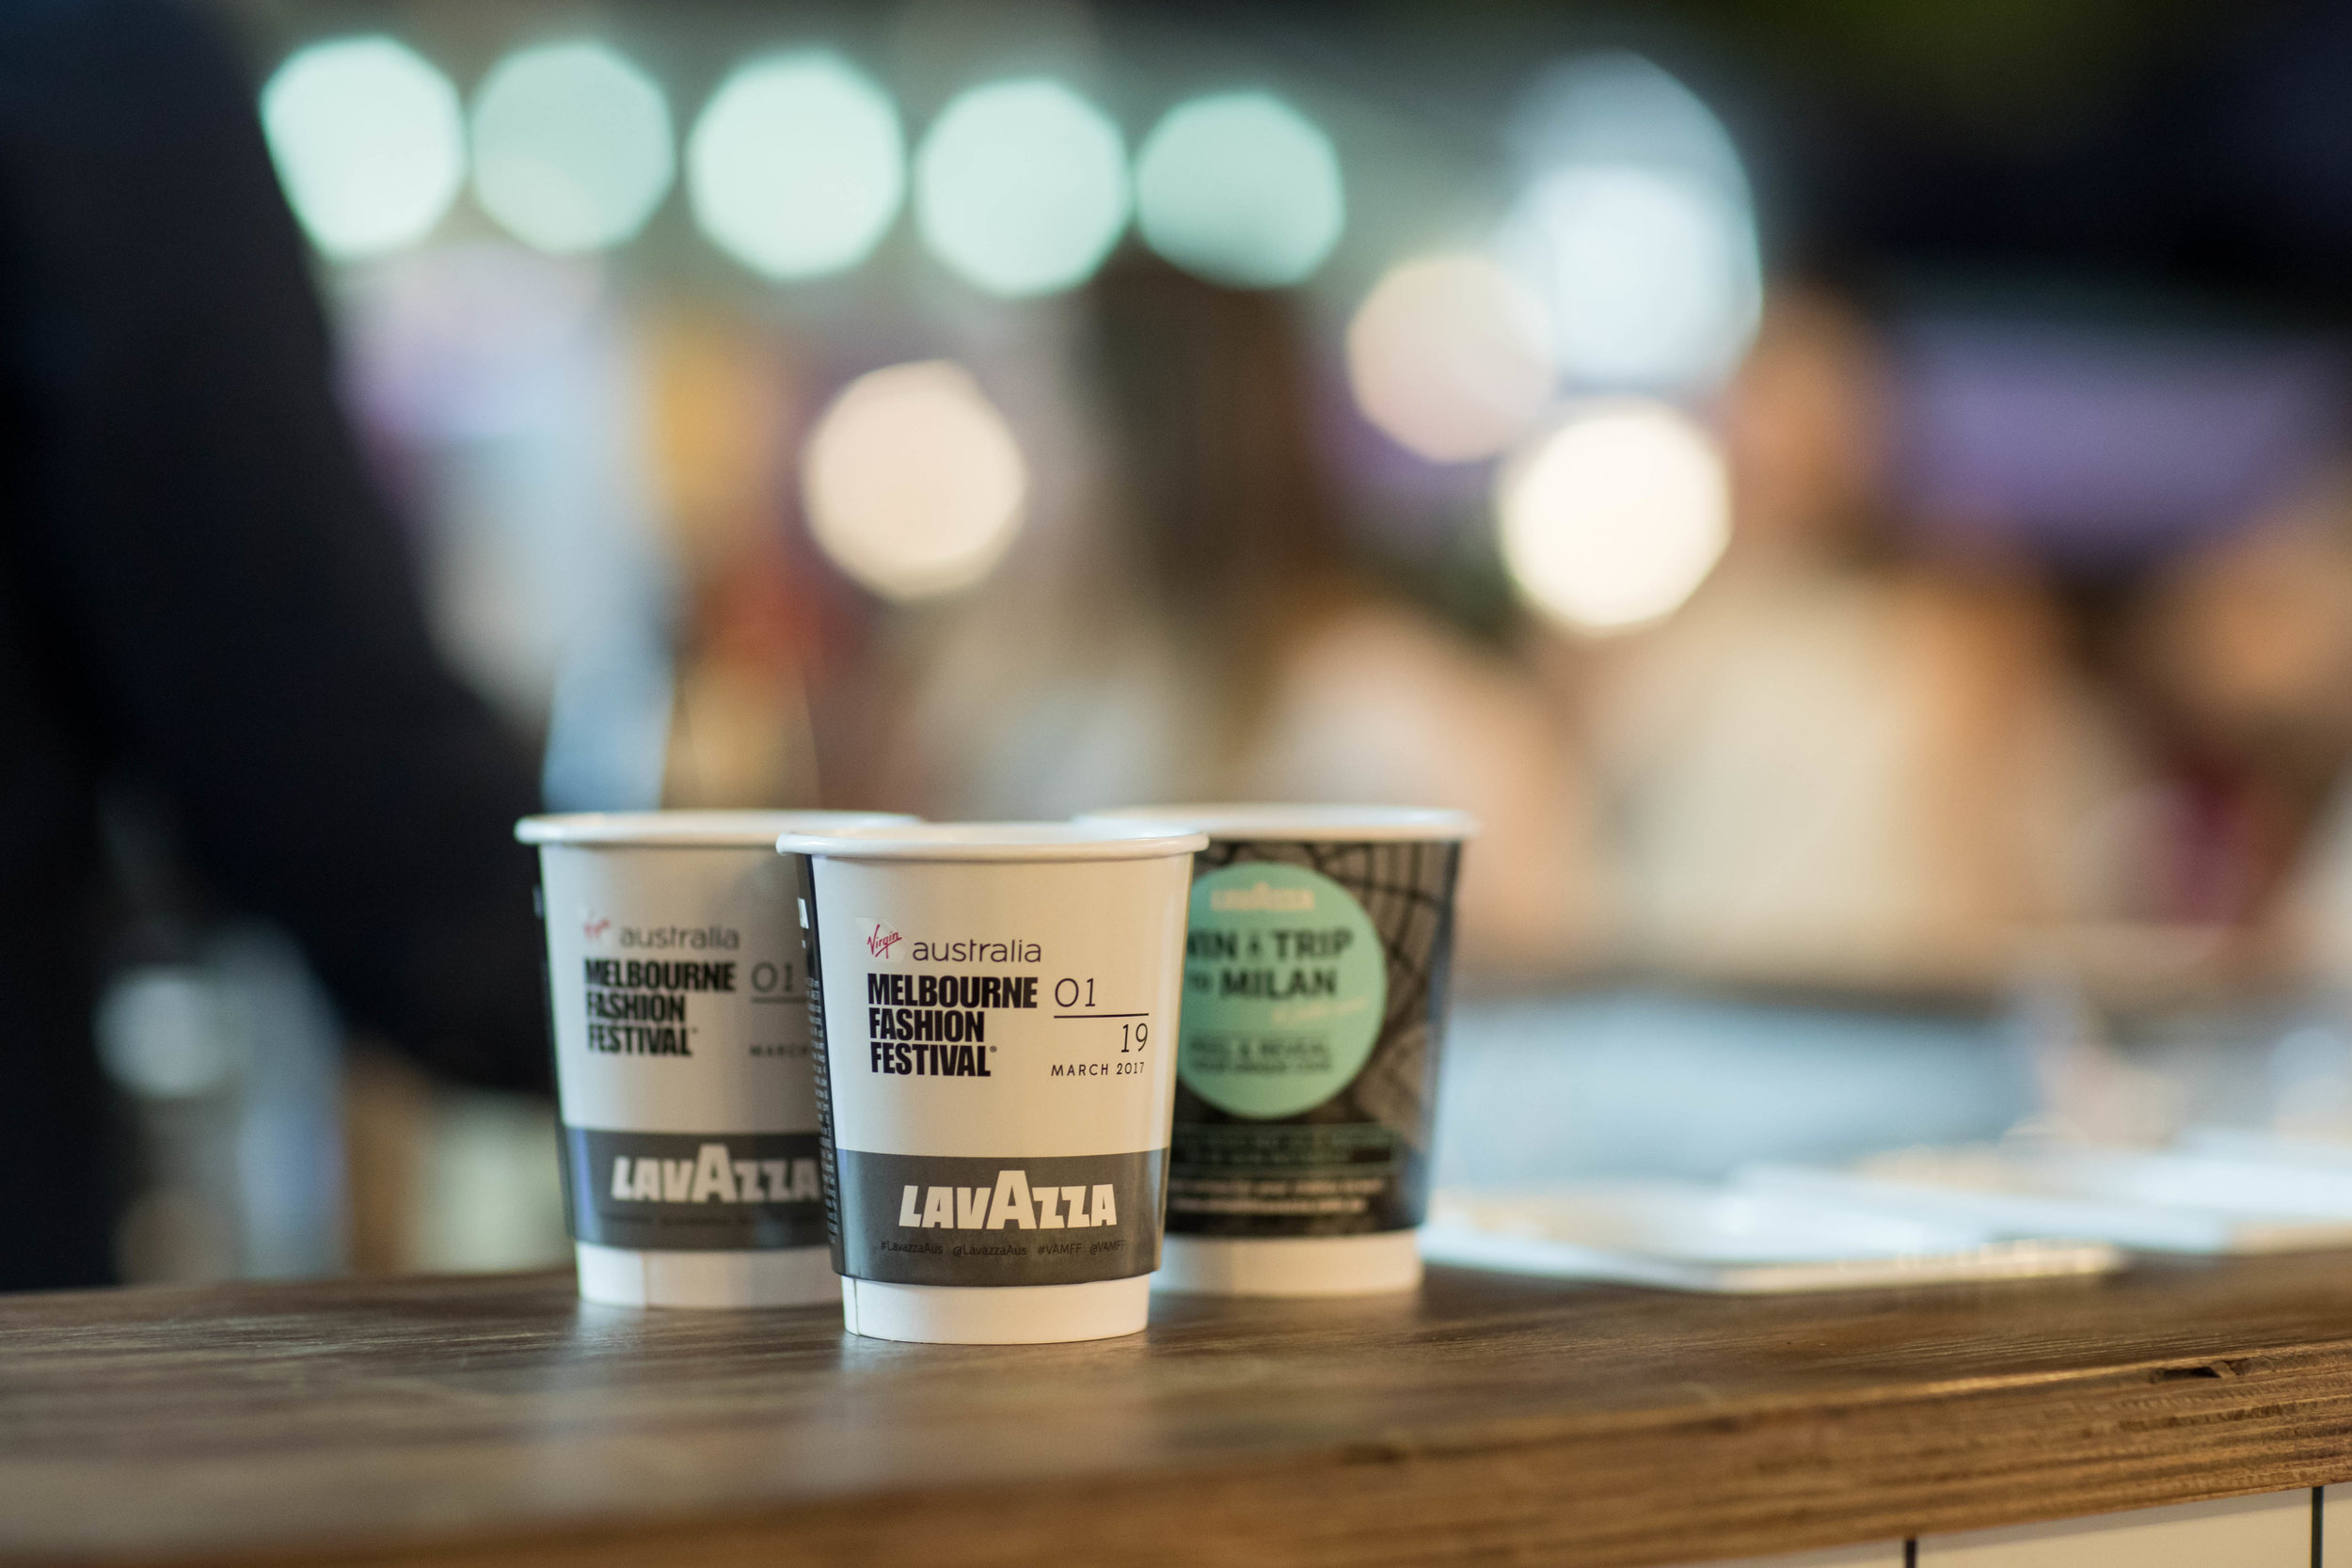 lavazza-vamff-2017-day-1-coffee-cups.jpg